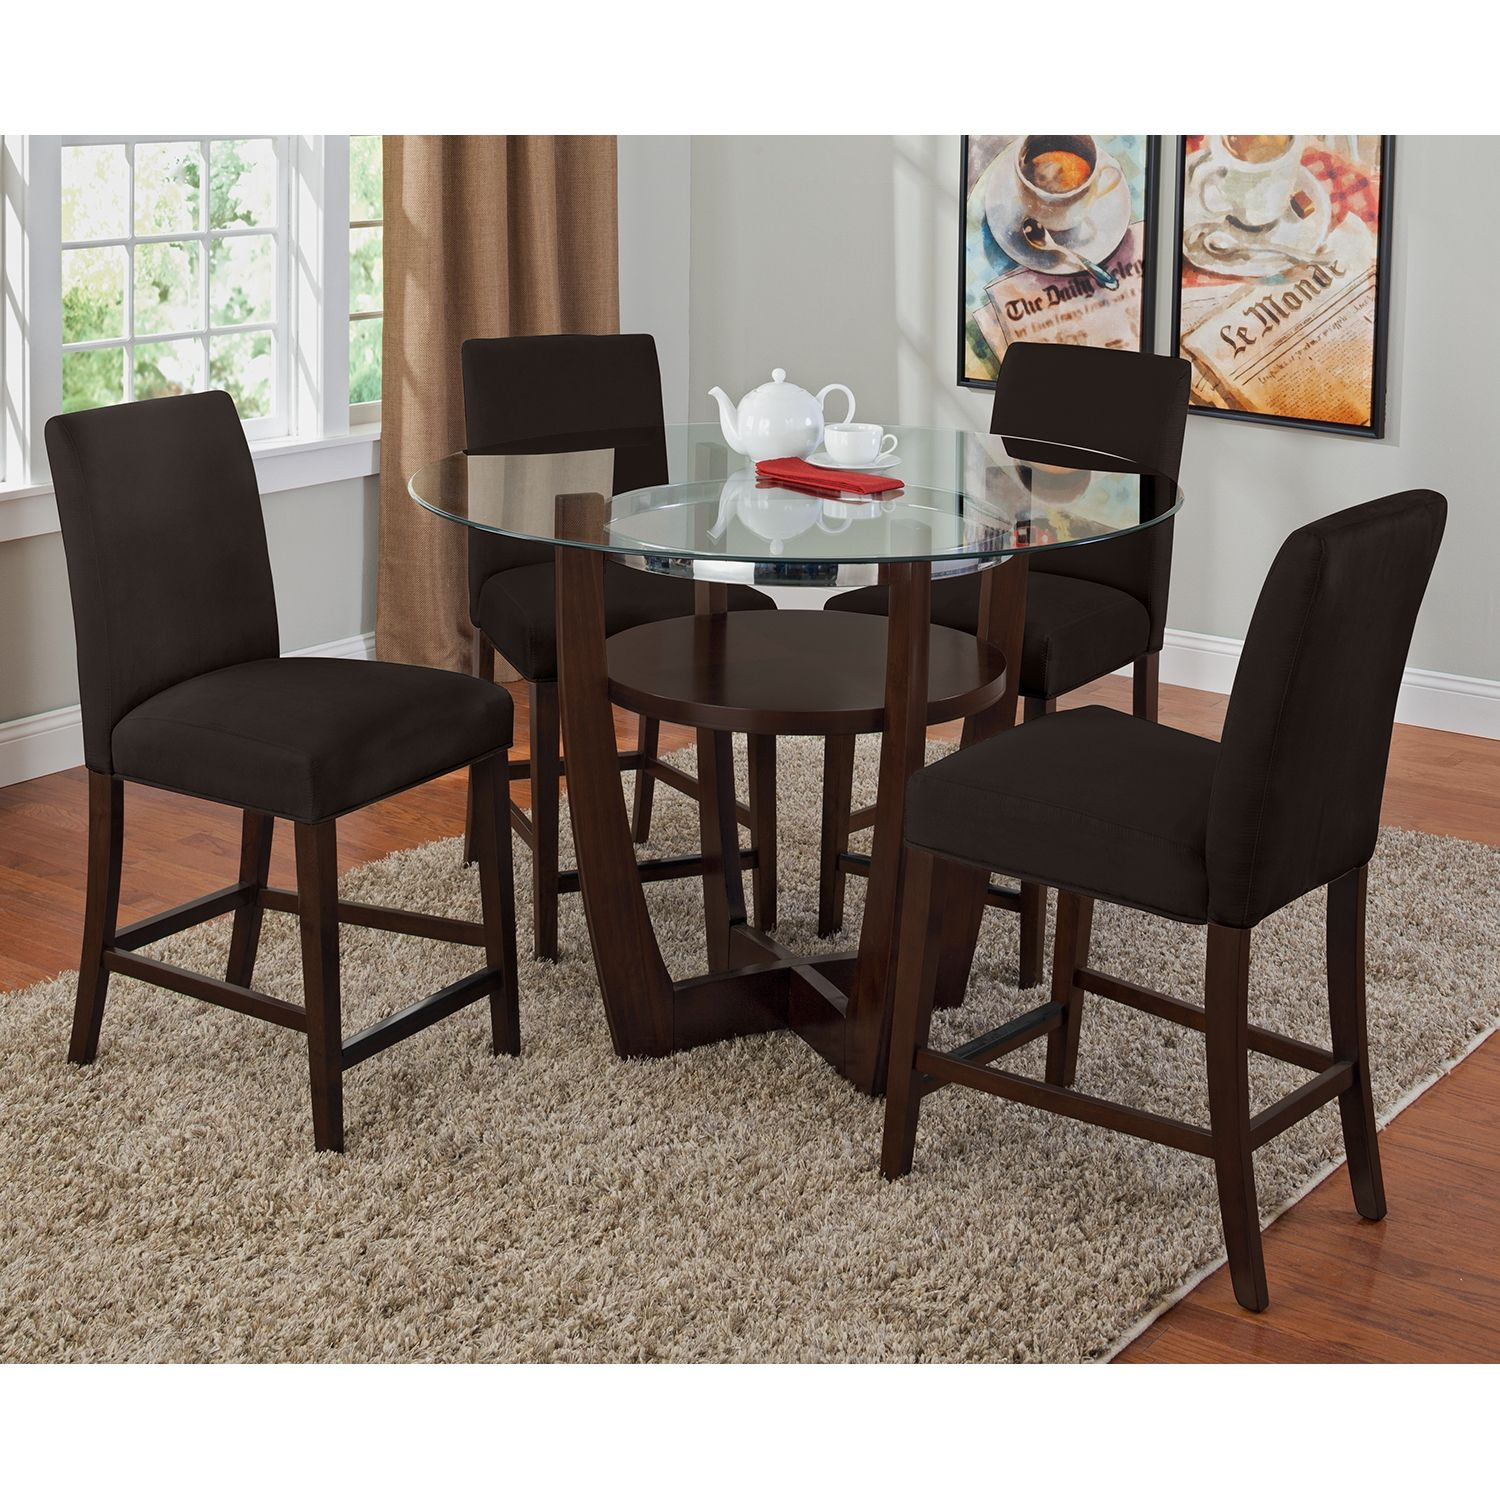 Alcove Chocolate Ii 5 Pc Dinette Value City Furniture Red